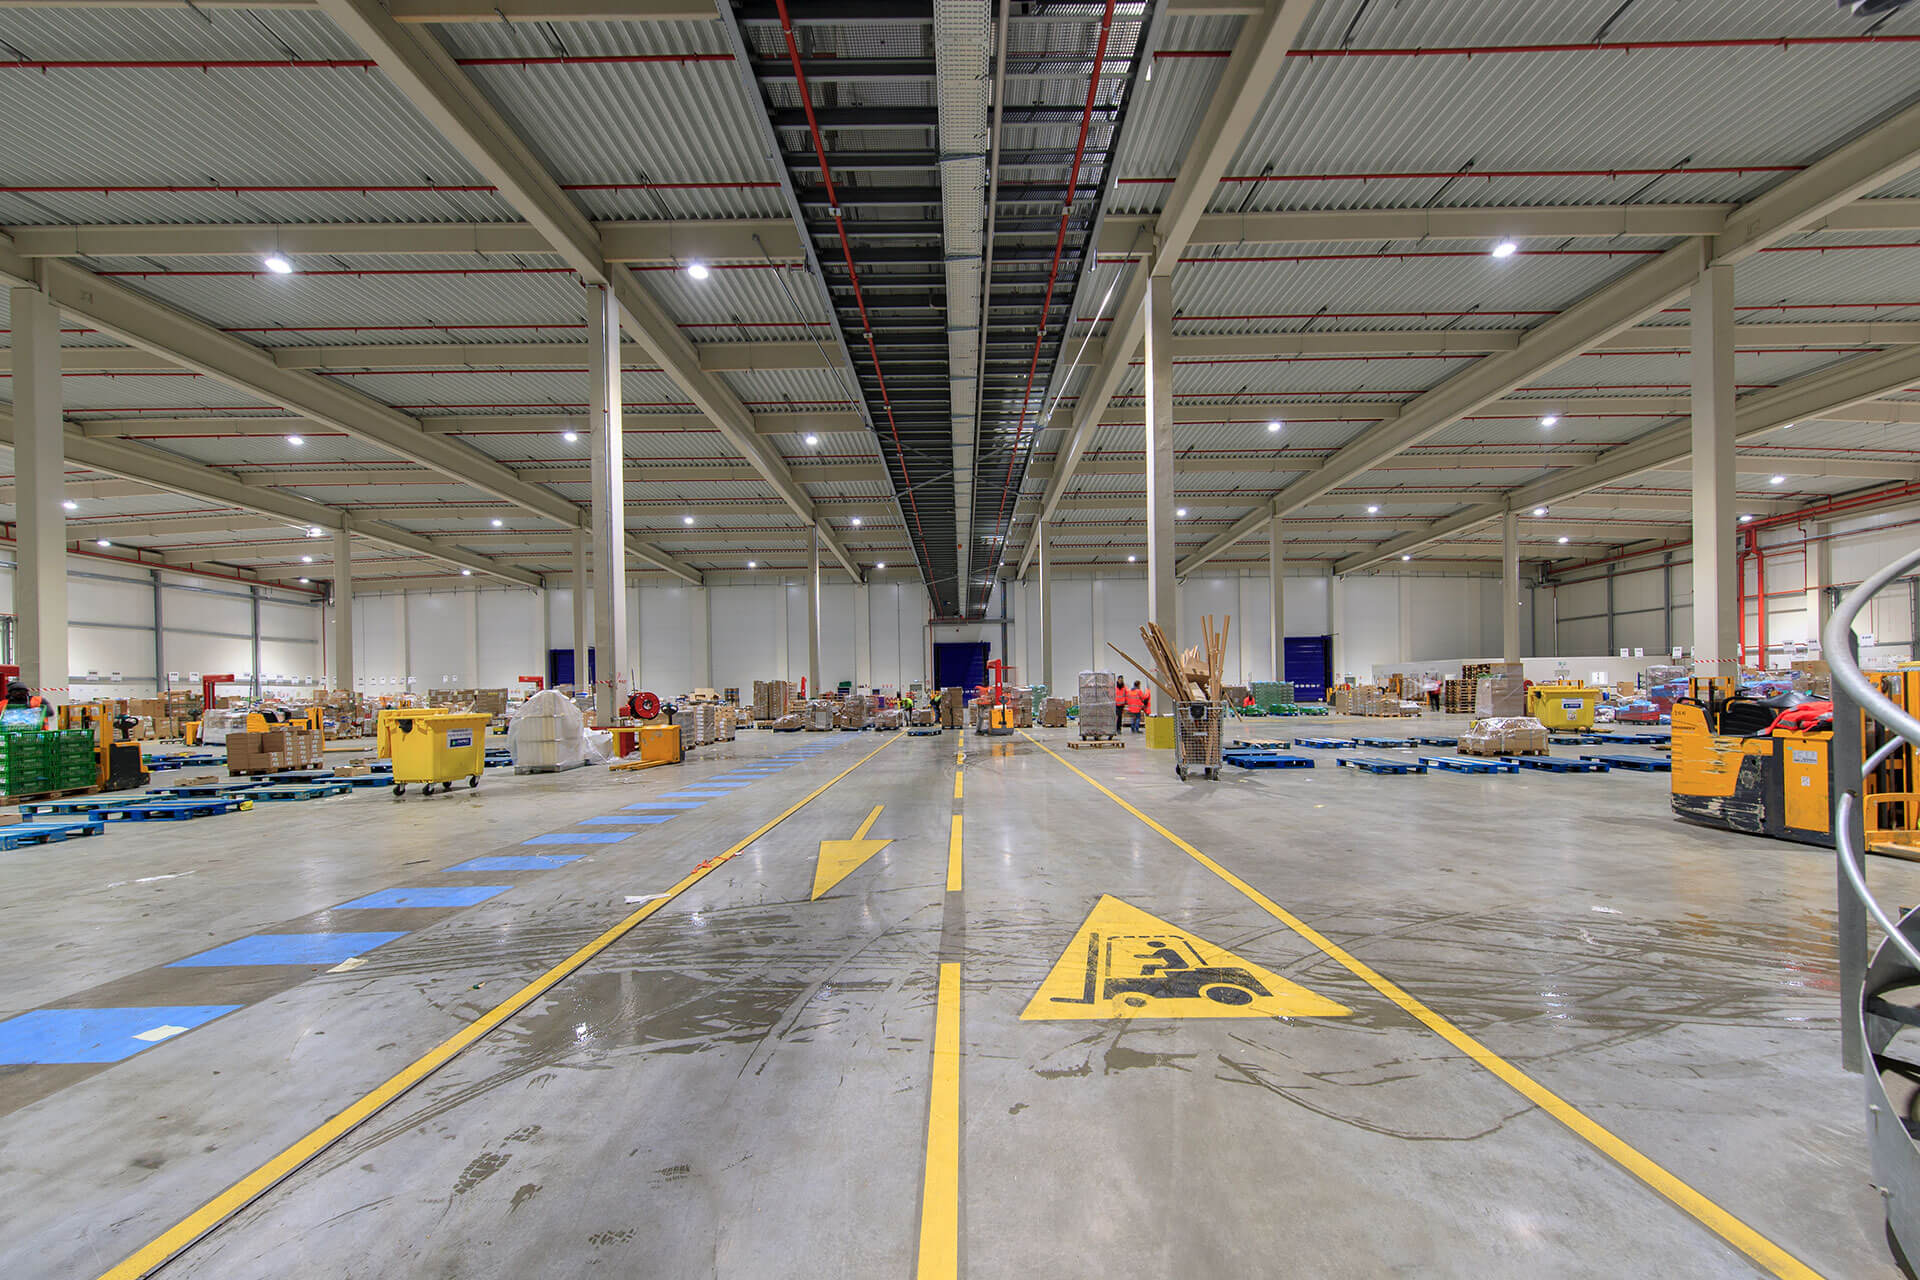 Industrial LED lighting solution lowers energy costs and carbon footprint of Carrefour distribution centre